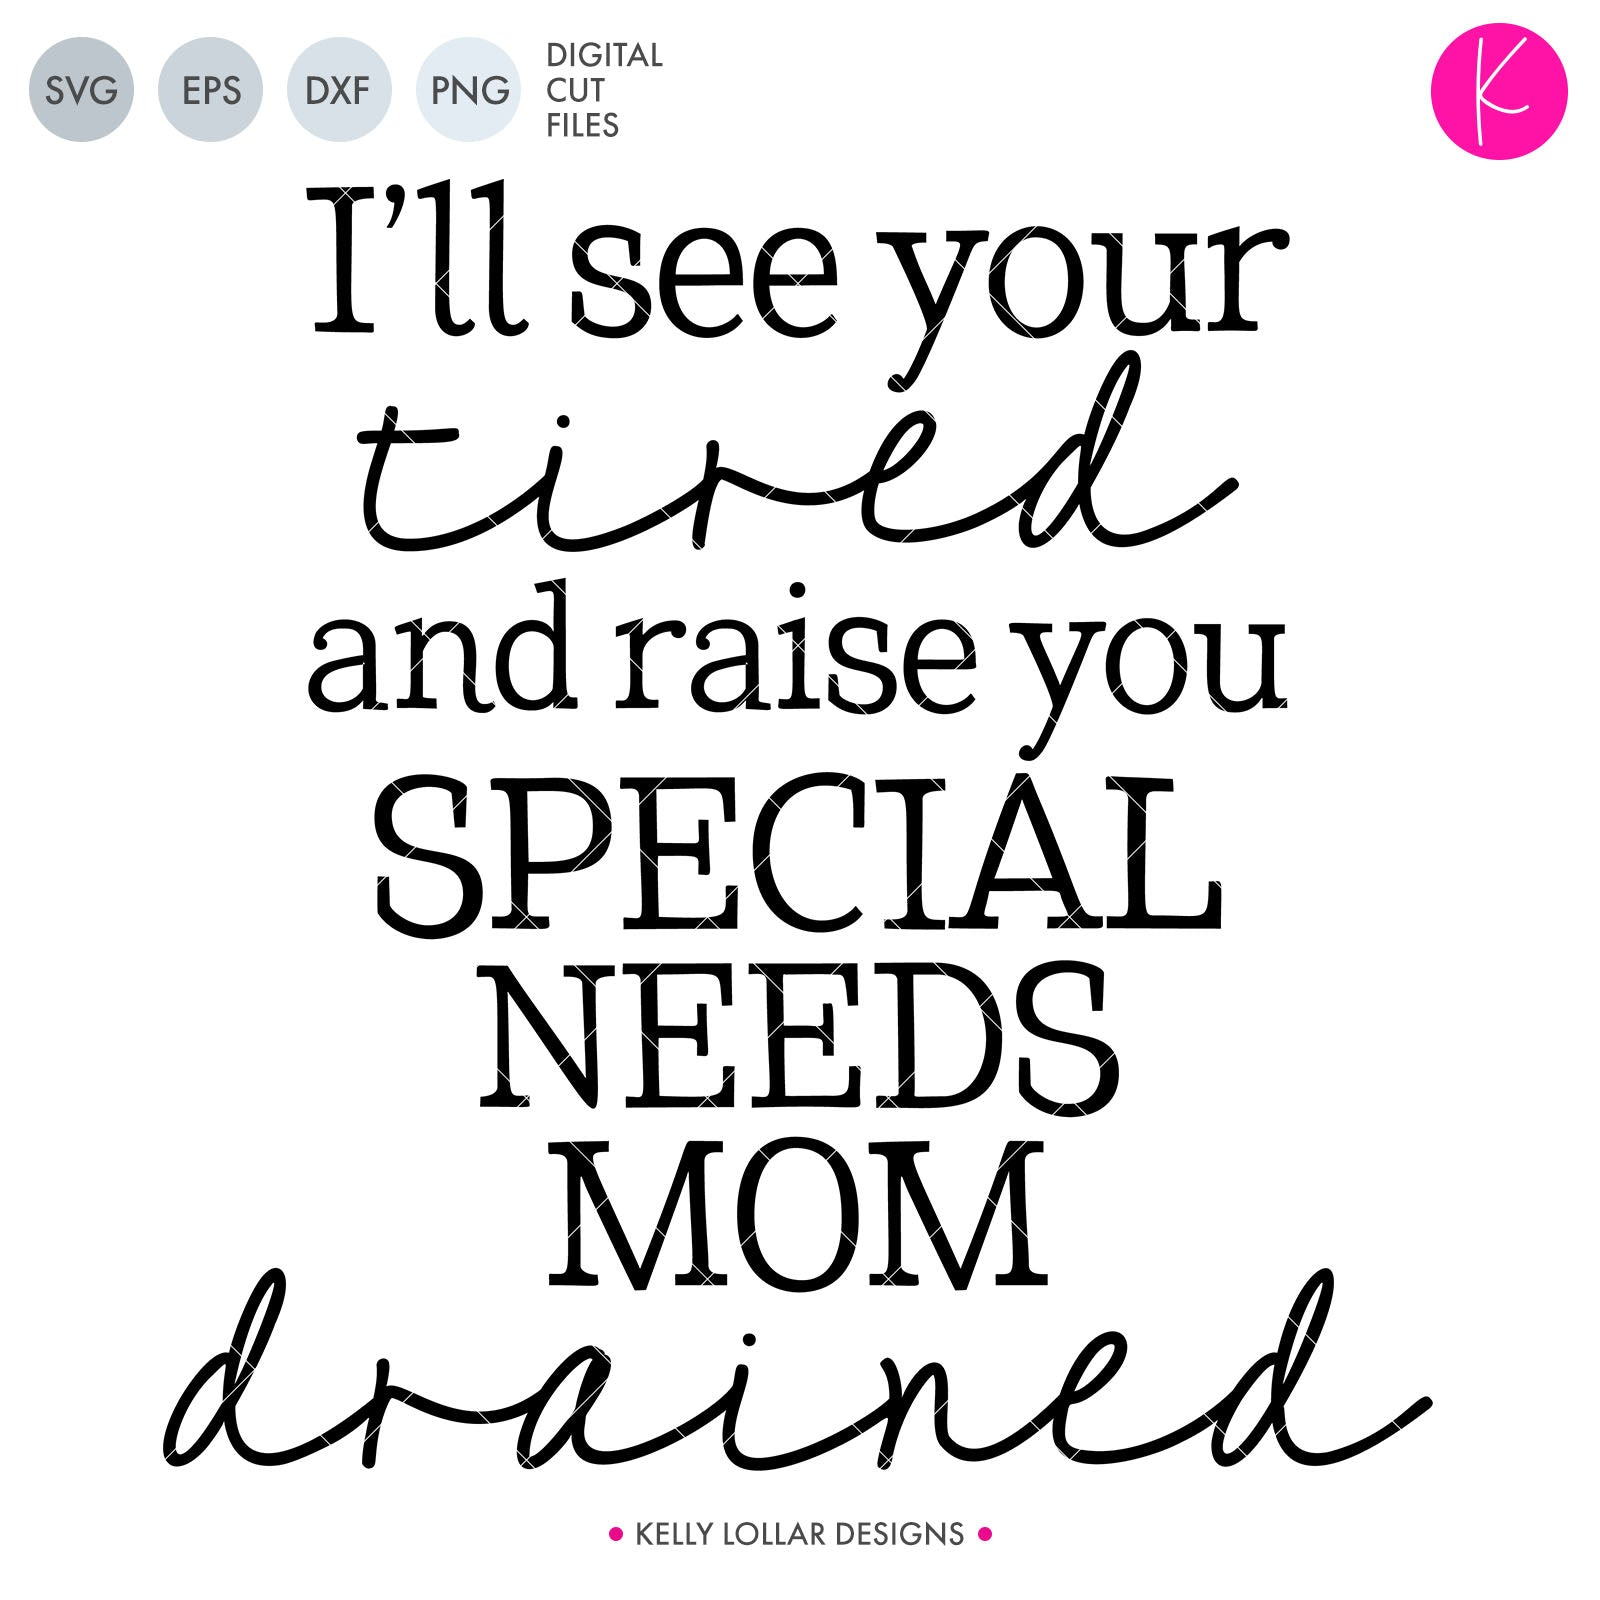 I'll see your tired and raise you special needs mom drained quote for Autism, Sensory Processing, ADHD and other Neurotype Moms